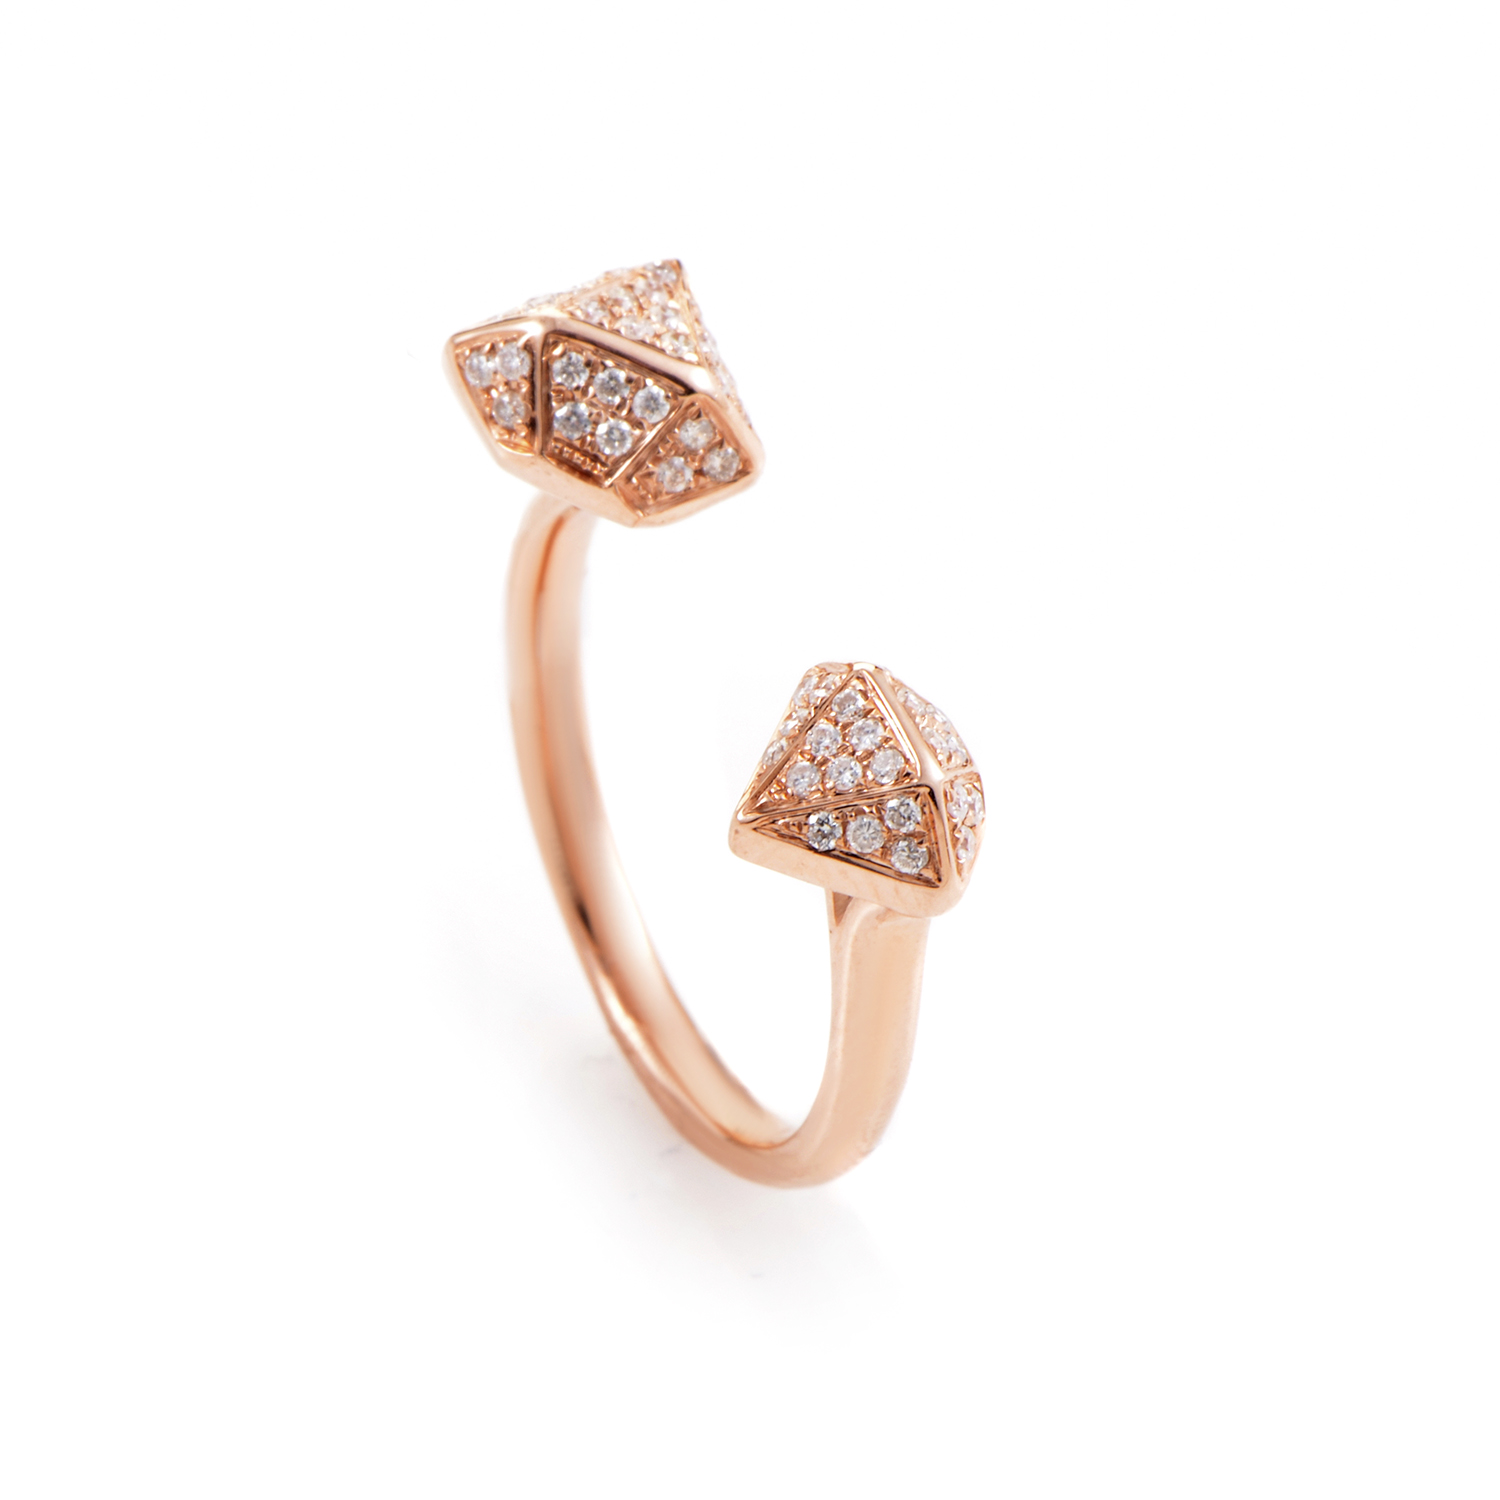 18K Rose Gold Open Diamond Band Ring KO3624RUBZ